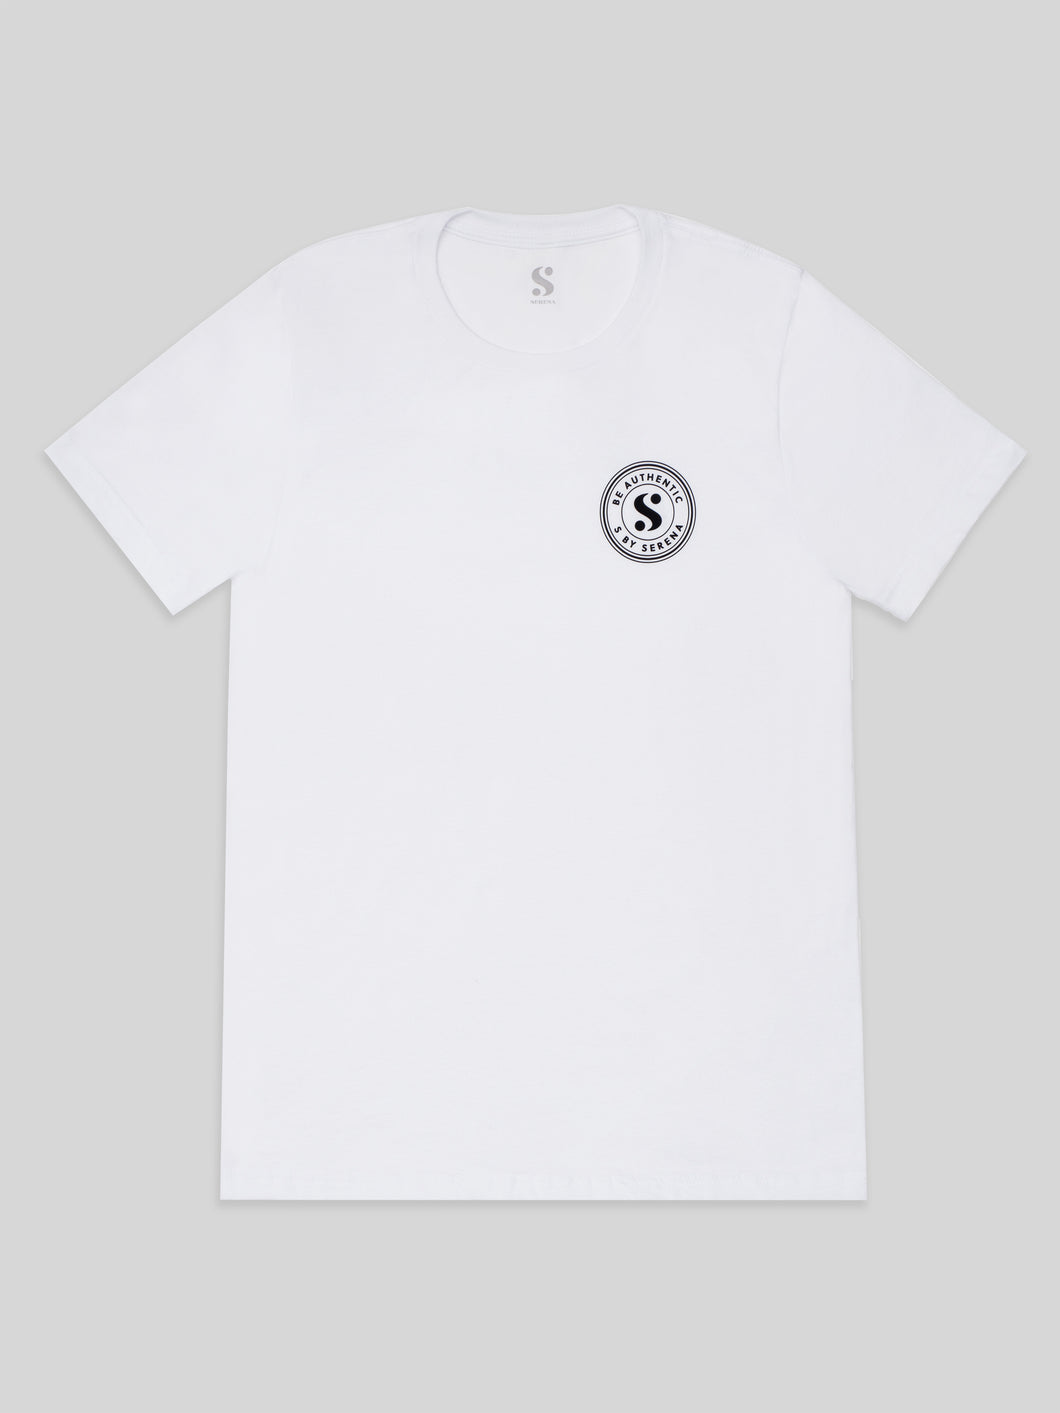 Be Authentic Unisex Tee in White